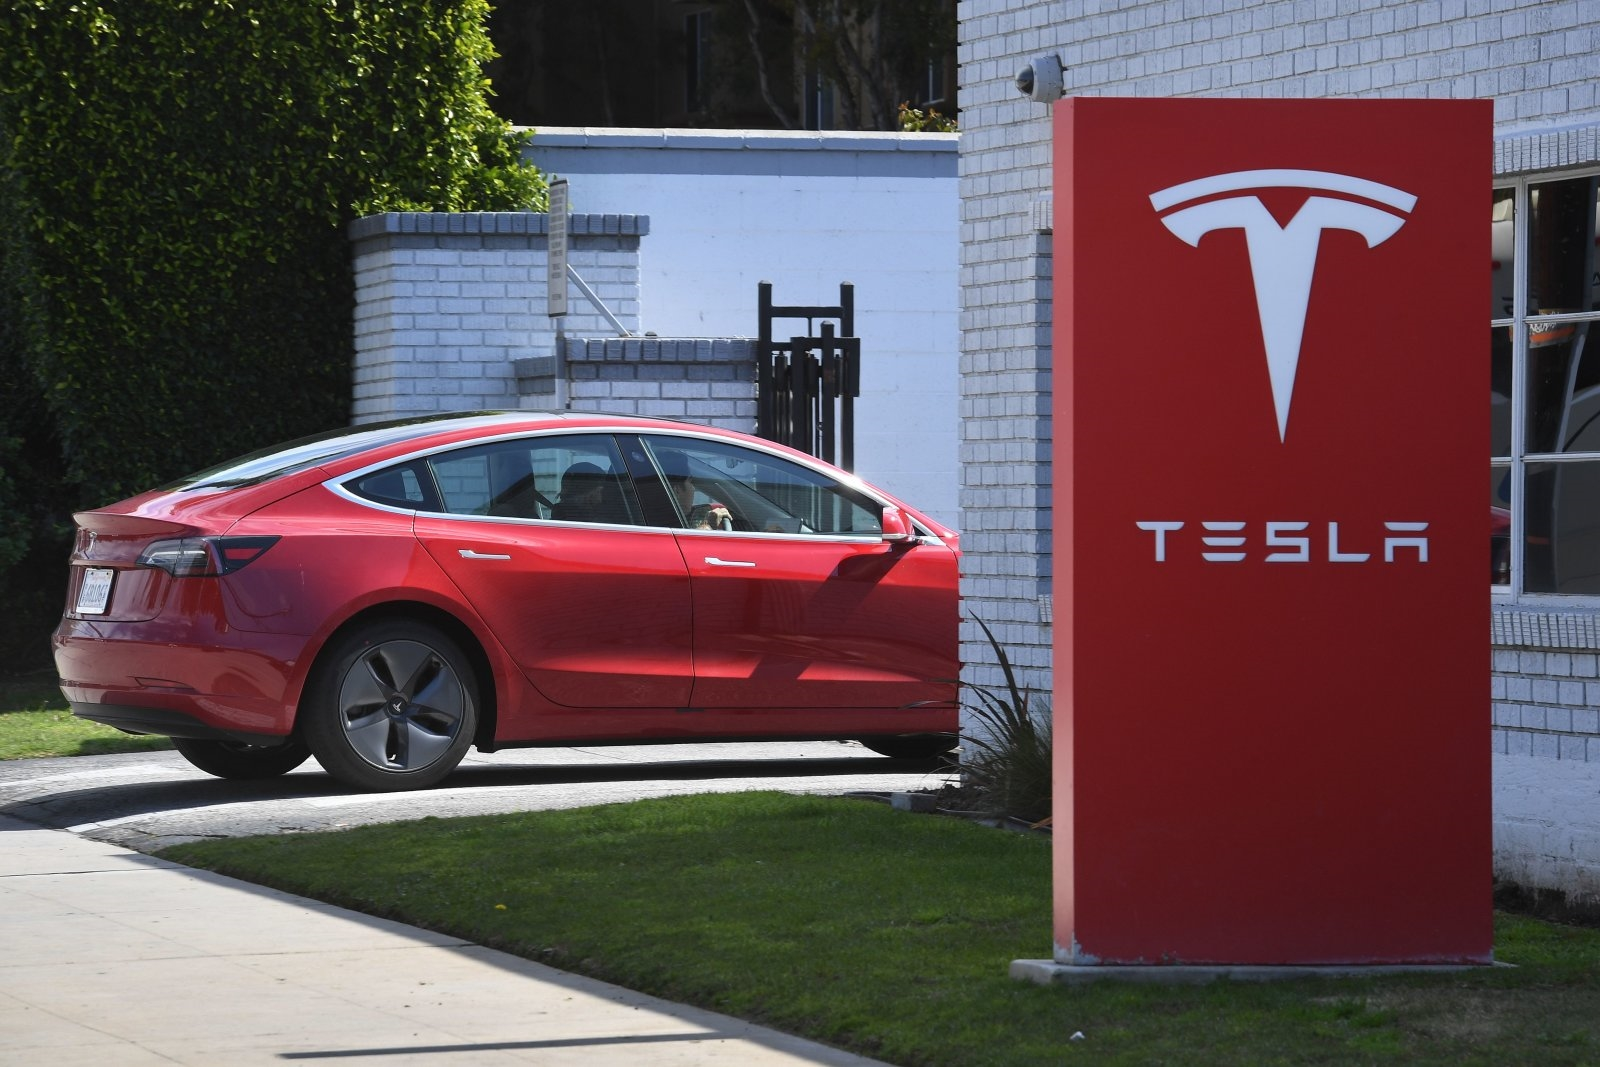 Tesla extends delivery times for base Model 3 by one month | DeviceDaily.com